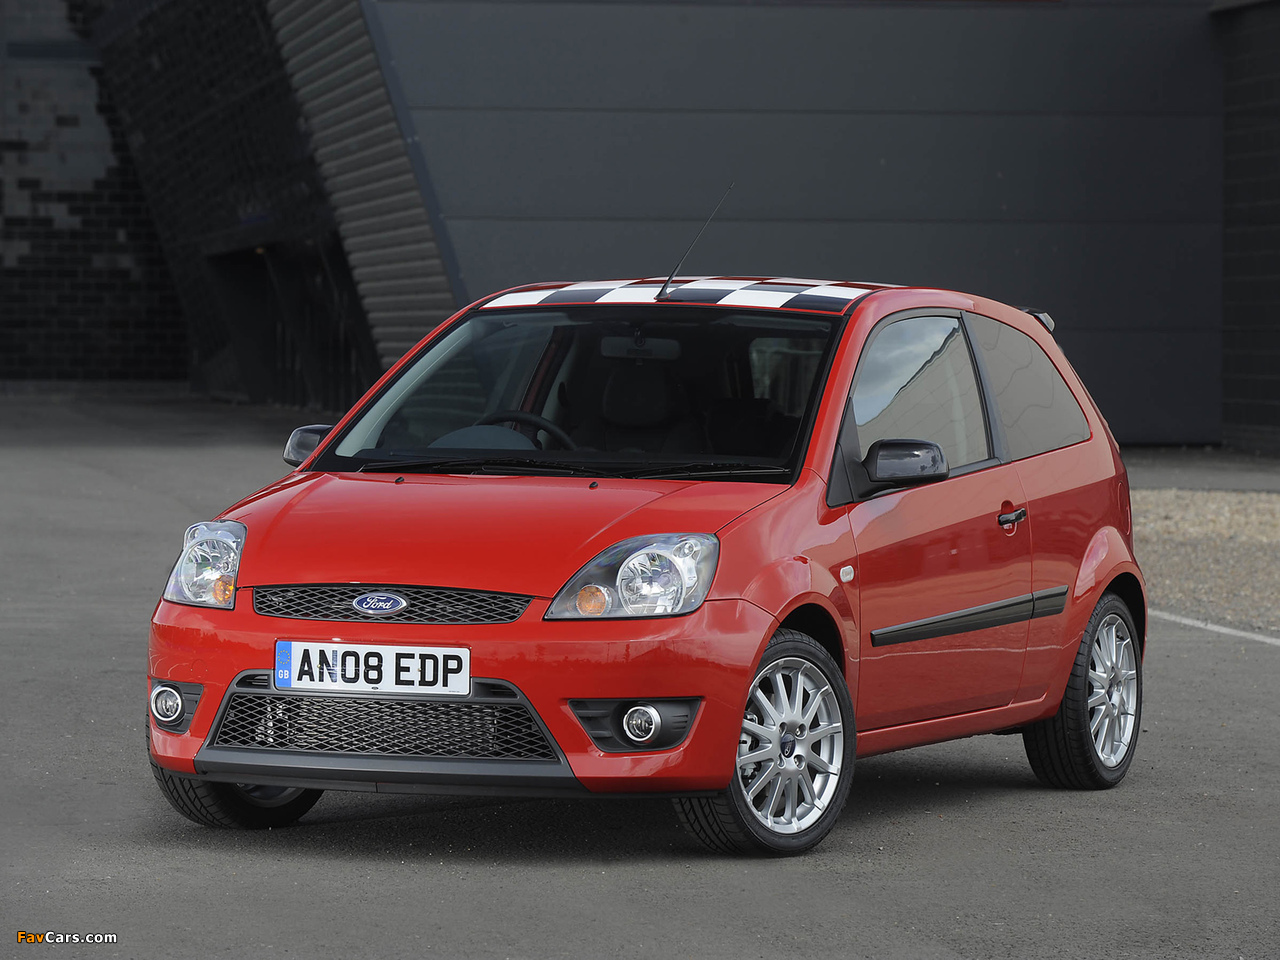 2008 Ford Fiesta Zetec Images Of Ford Fiesta Zetec S Red 2008 1280x960